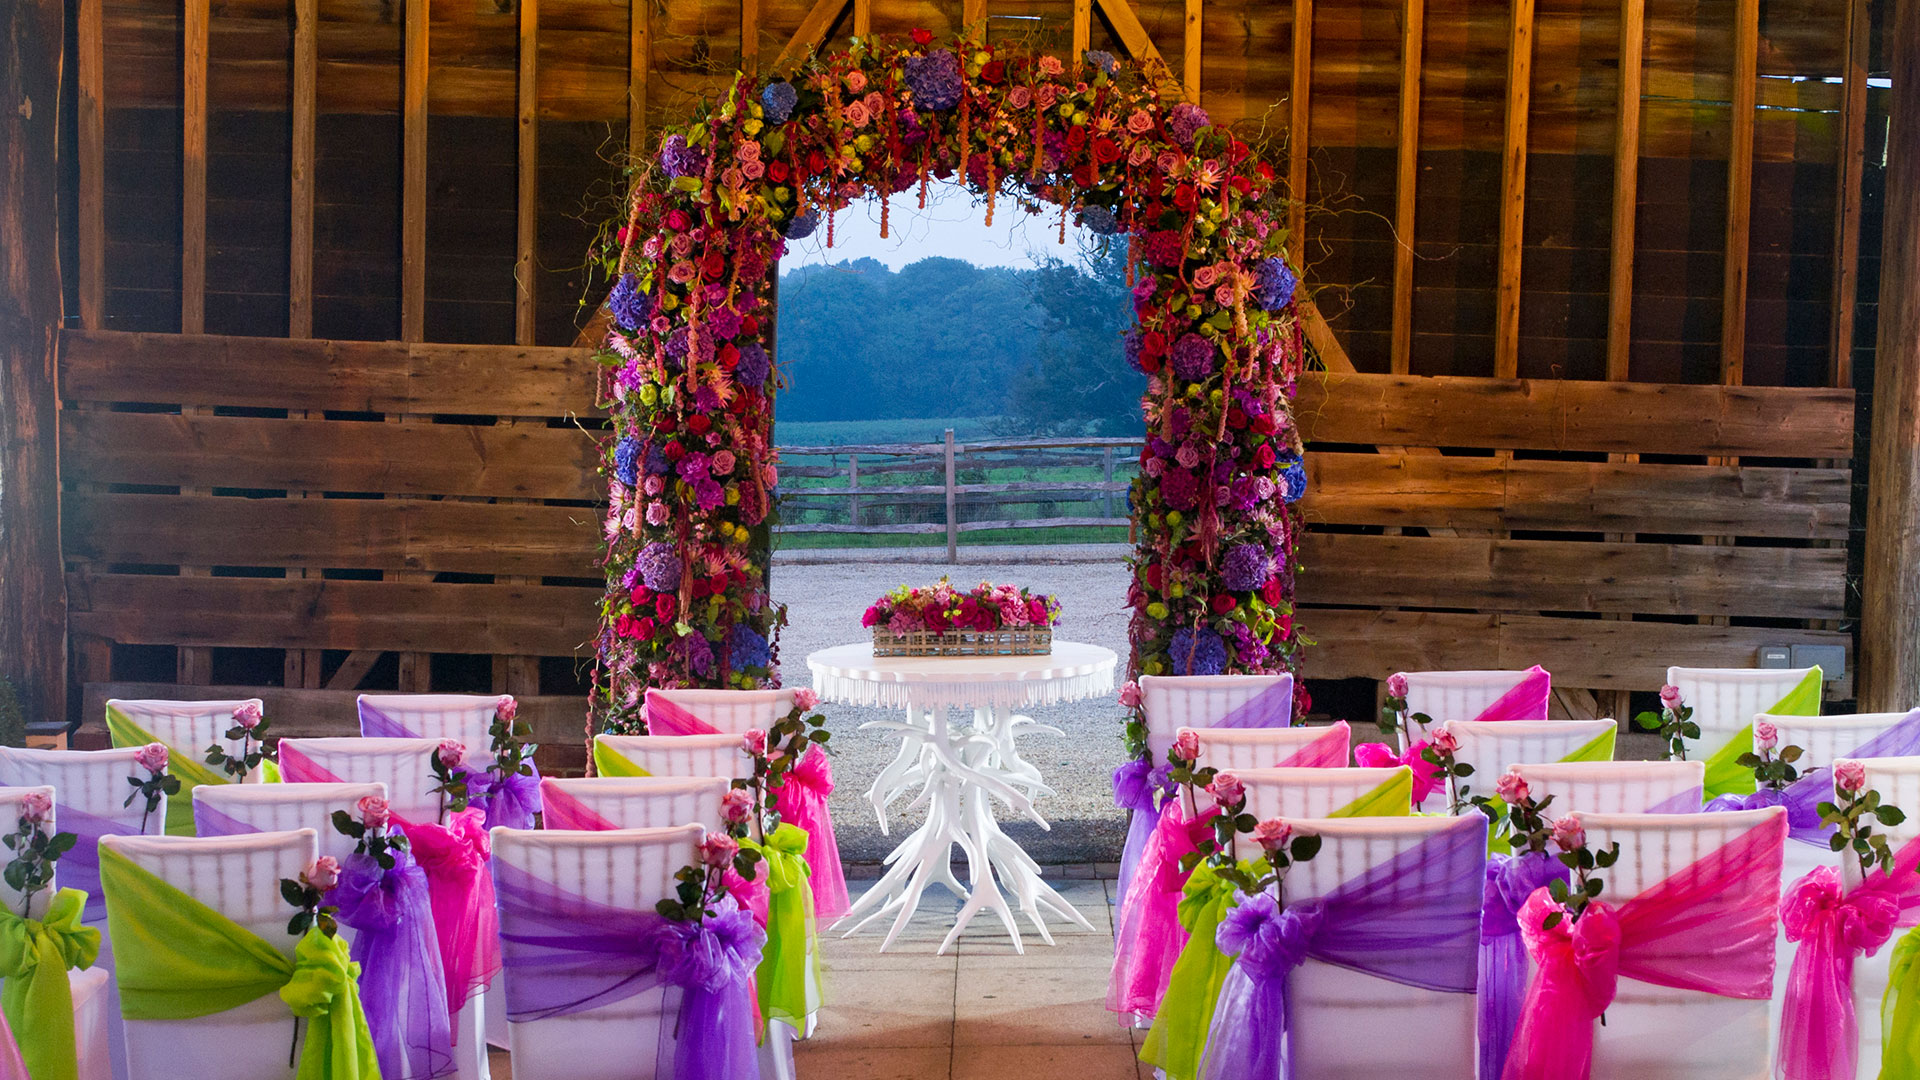 The Gather Barn with rich mahogany beams is perfect for outdoor weddings - wedding barns Essex